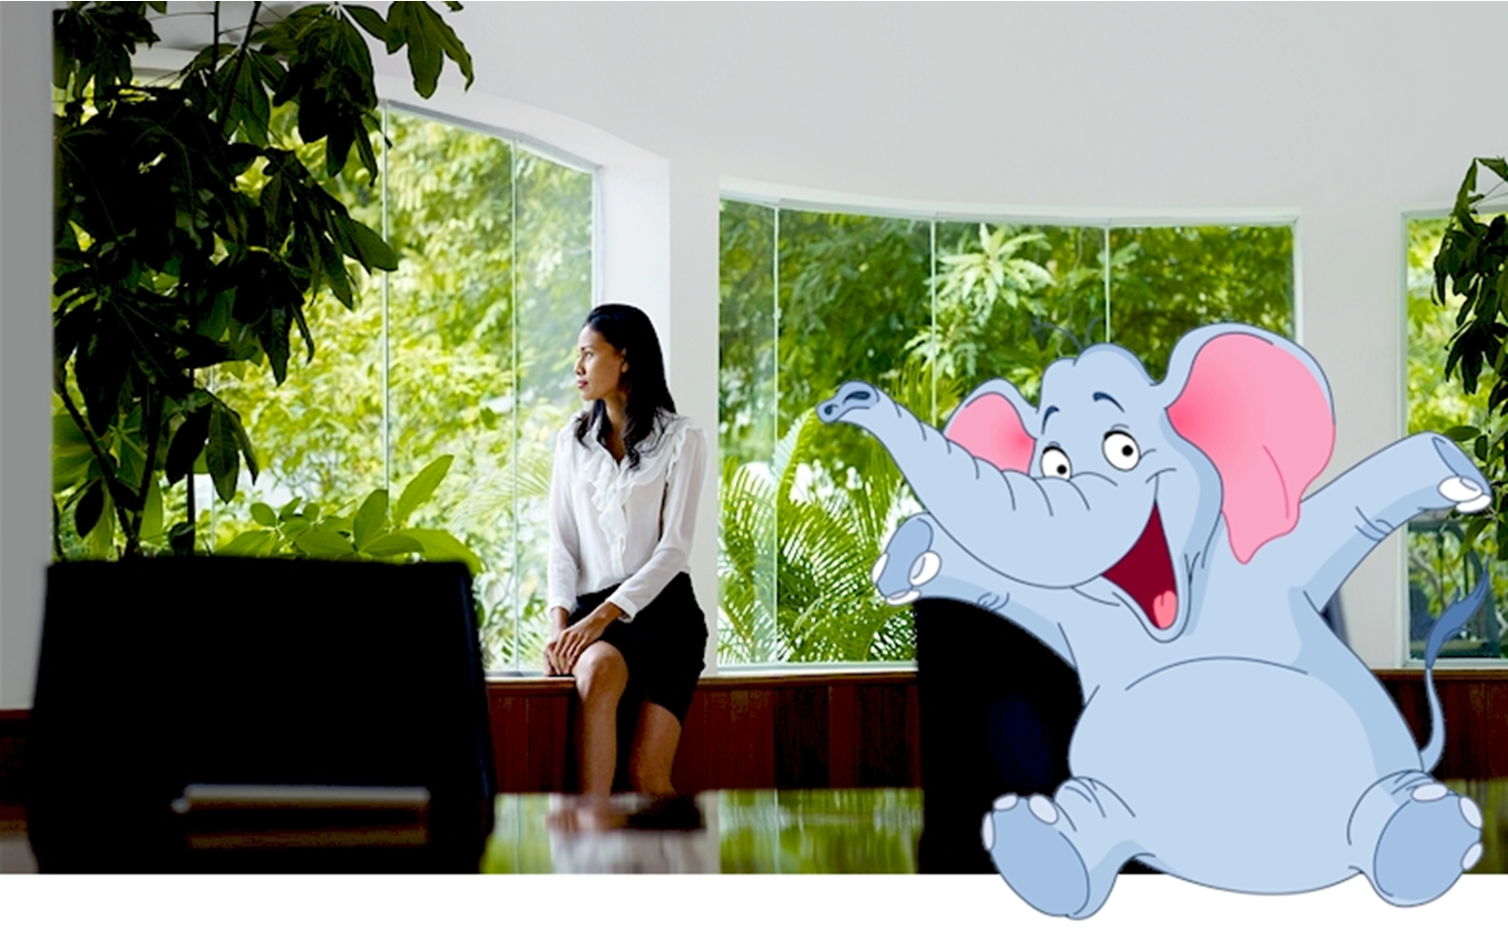 Biophilic design for more natural offices – is there an elephant in the room?